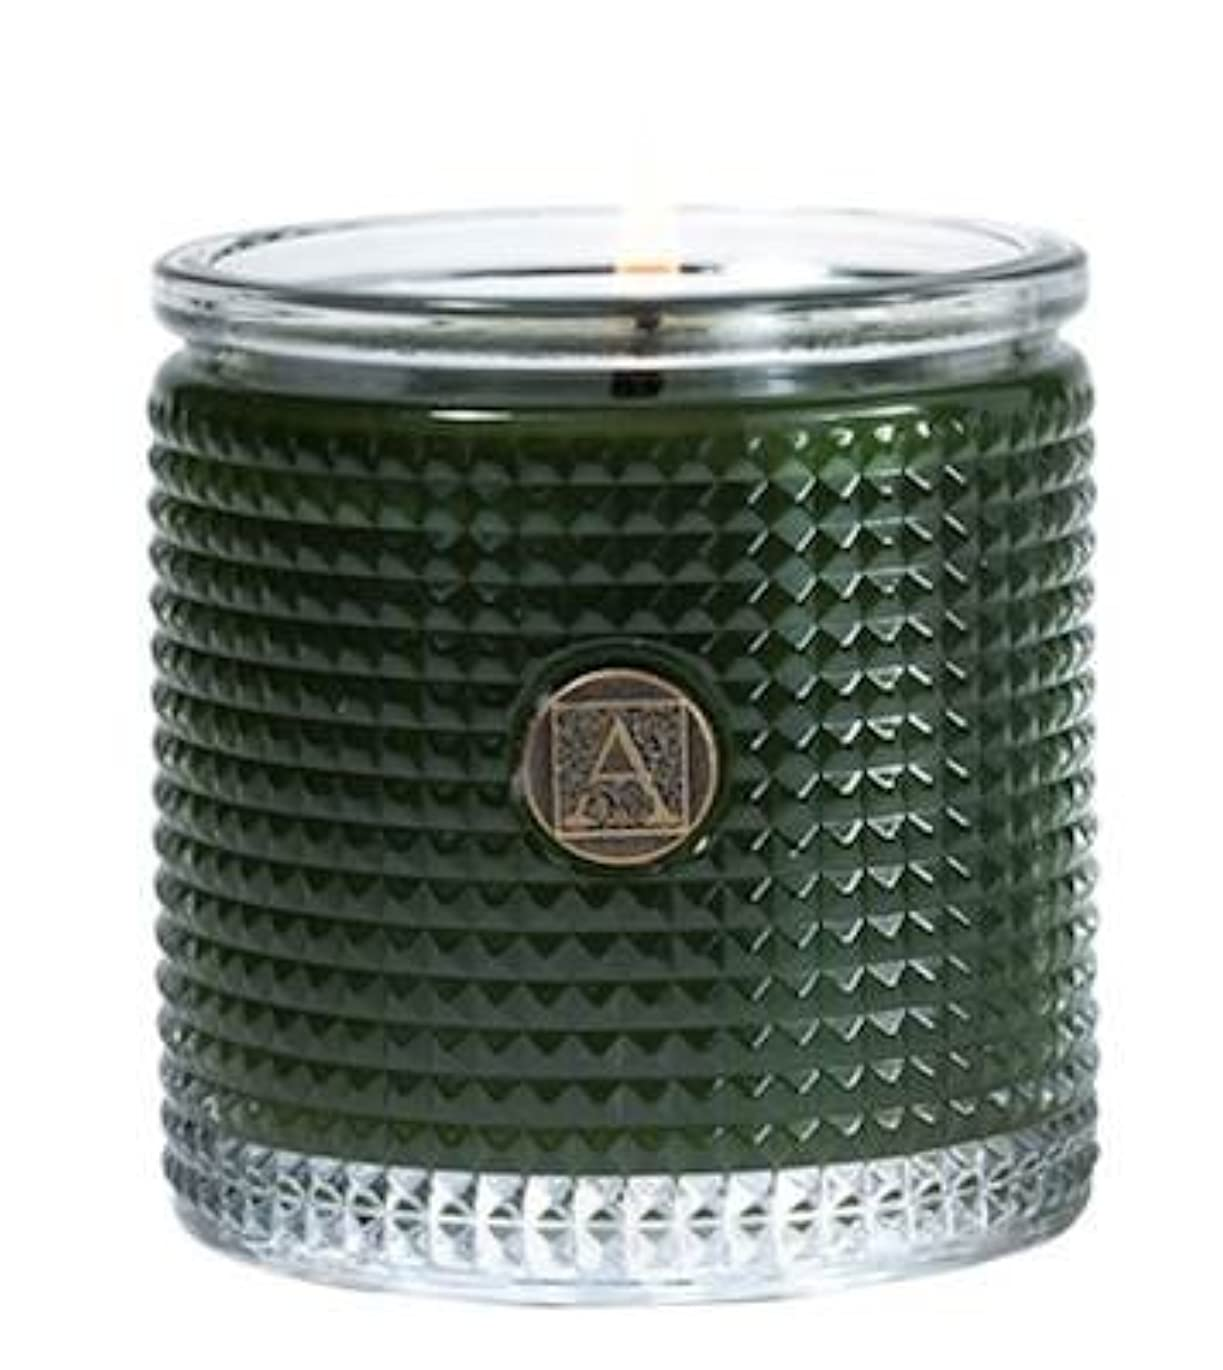 エレメンタル懸念ボートSmell of theツリーTextured Glass Candle、5.5 Oz by Aromatique